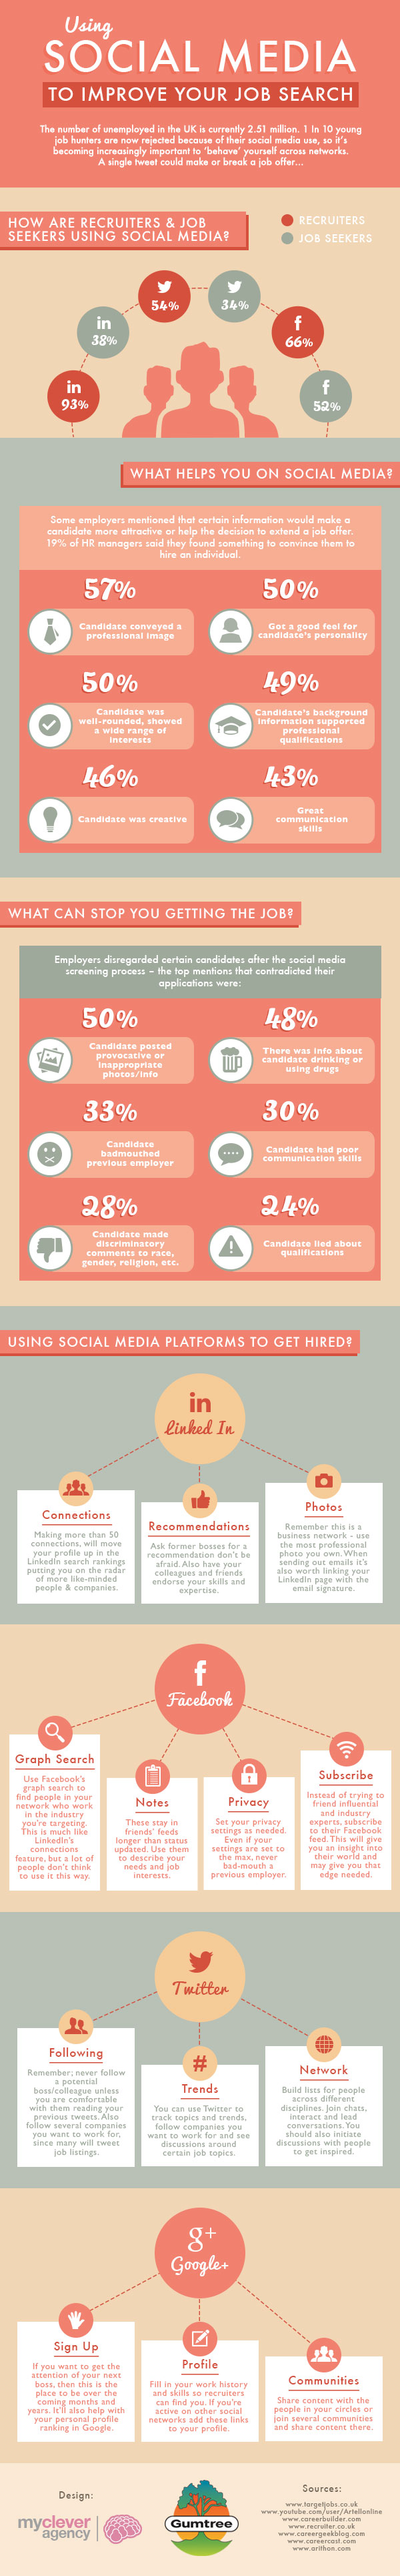 Using-Social-Media-To-Improve-Your-Job-Search